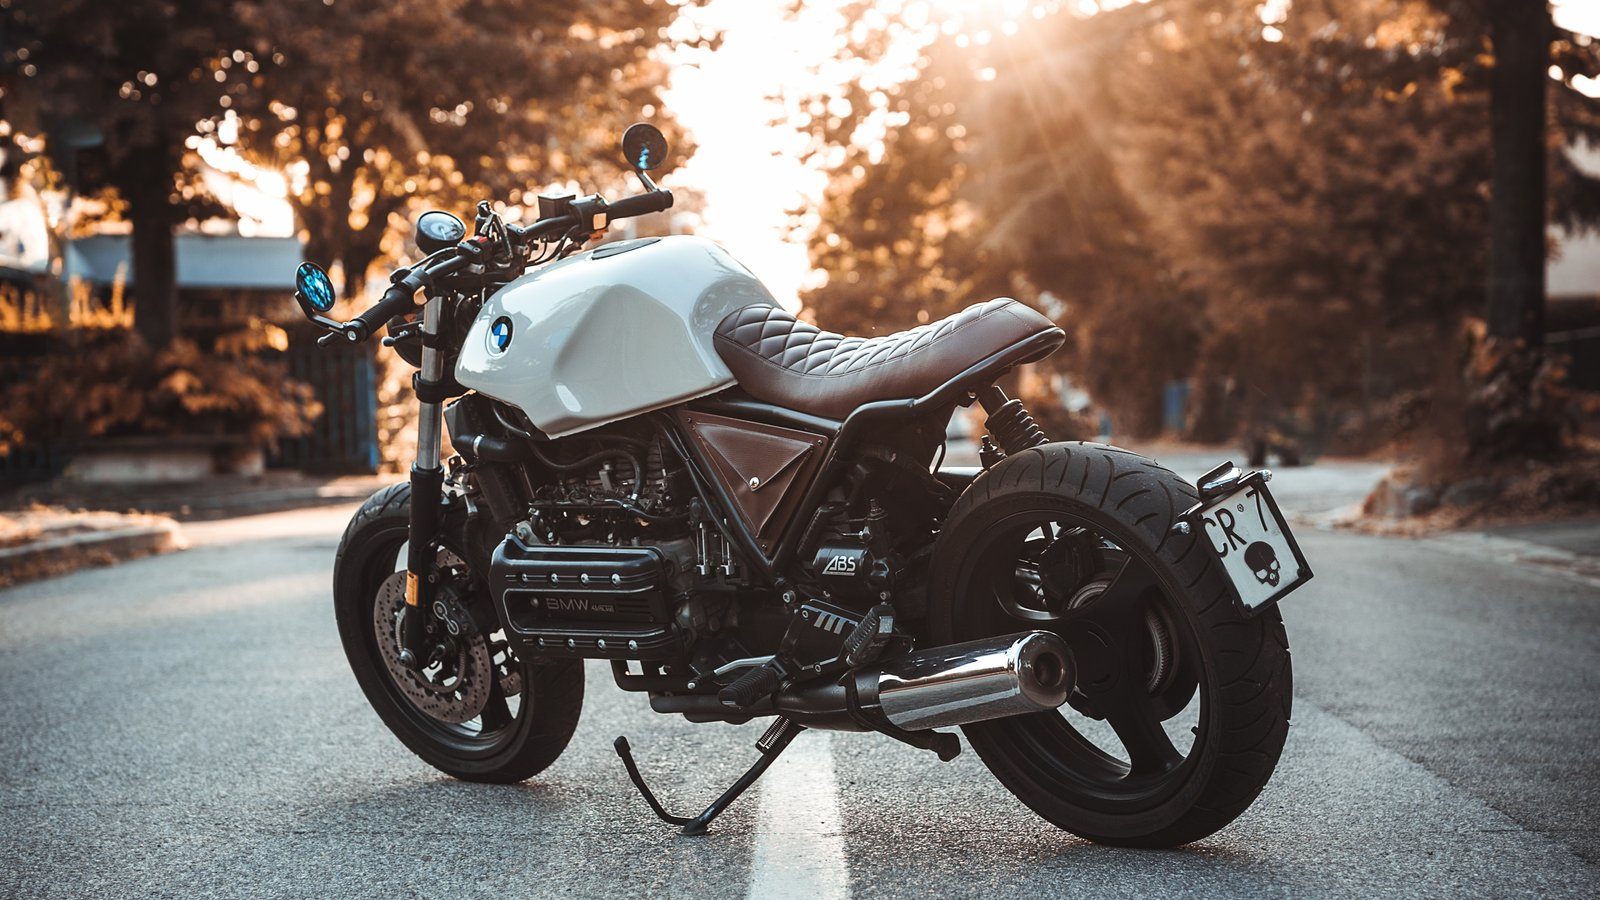 Top 10 Bmw Motorcycle Tours Worldwide